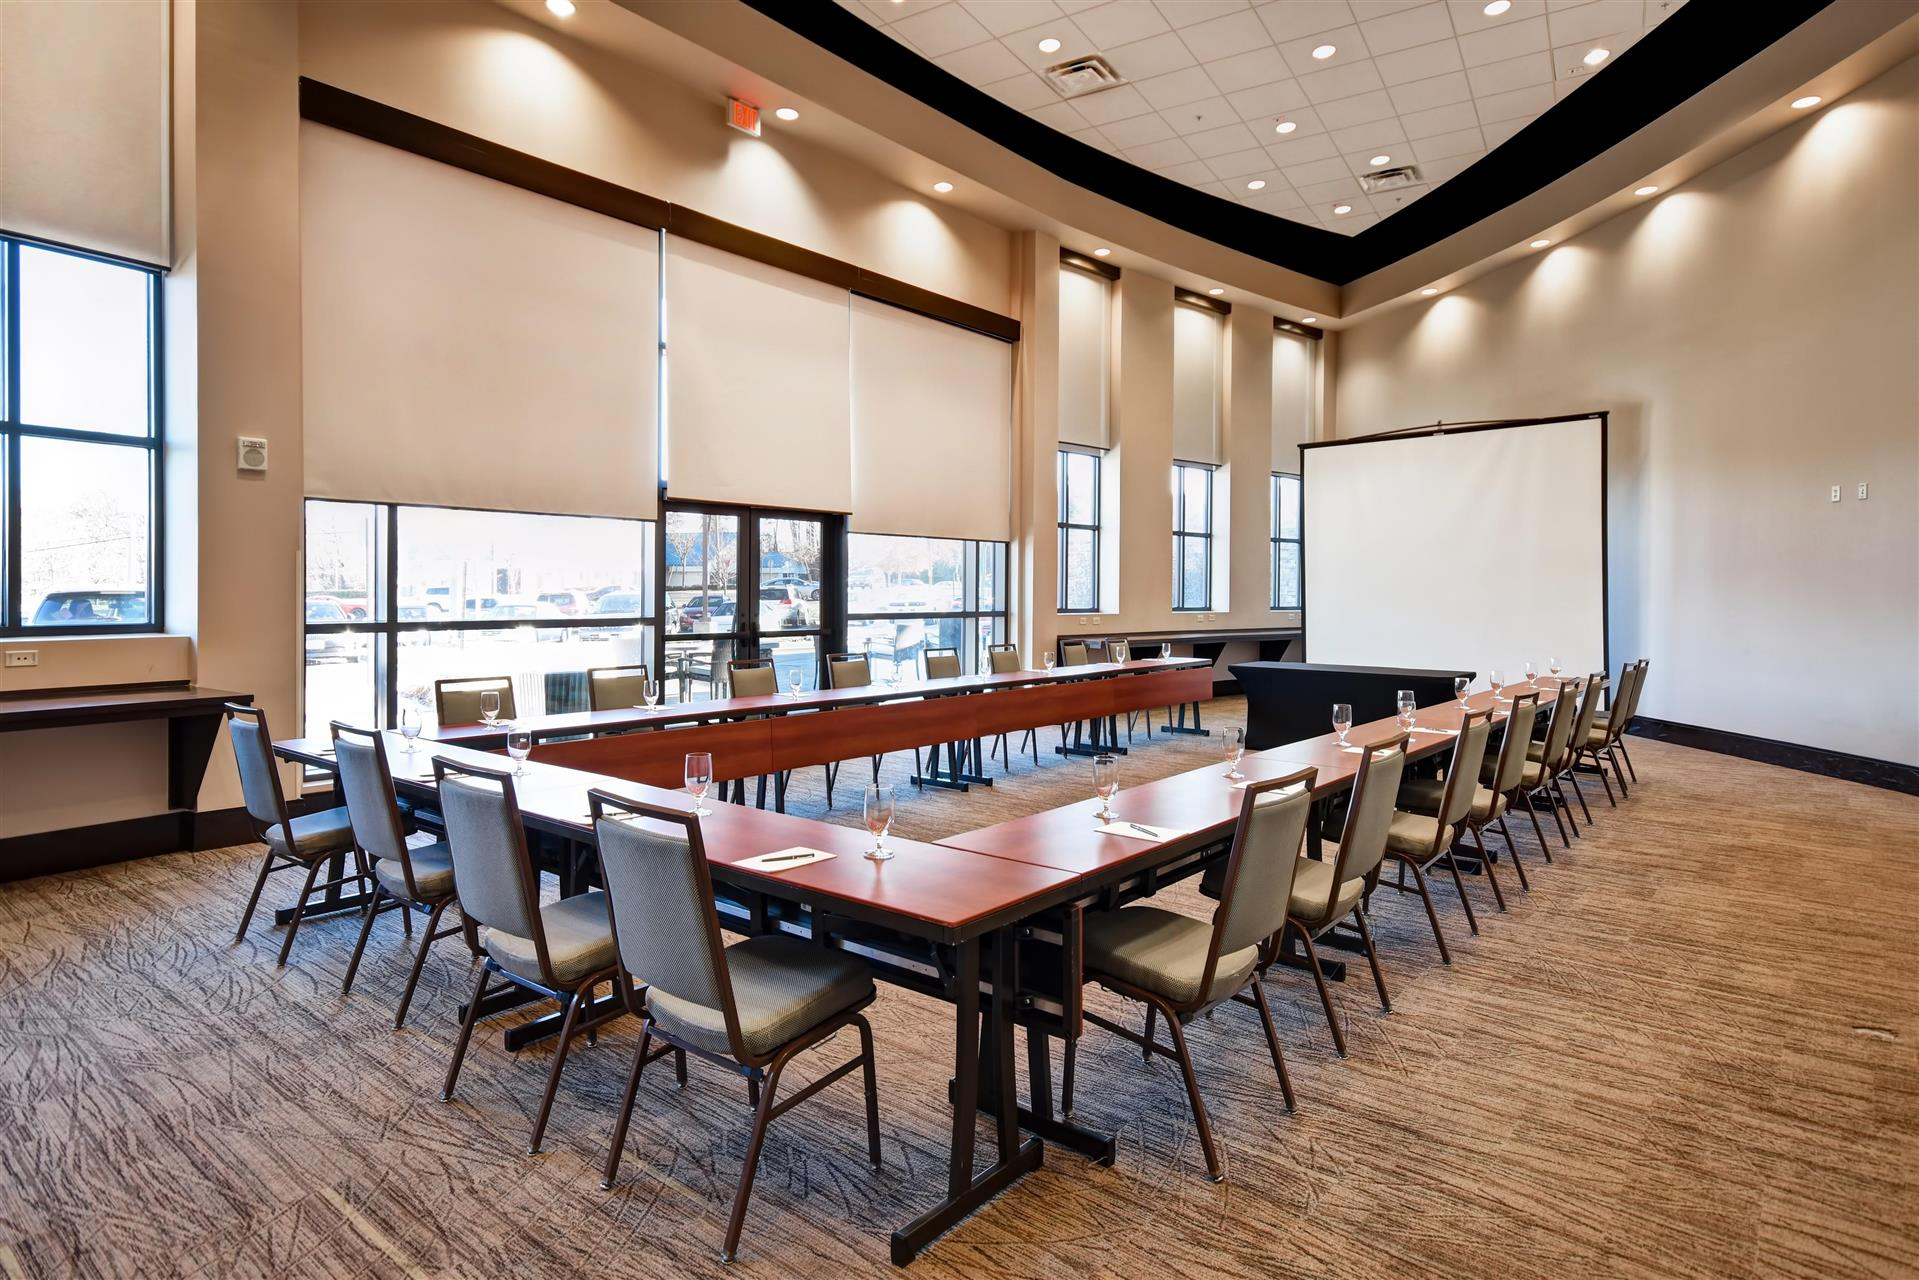 Meetings and events at Embassy Suites by Hilton Springfield